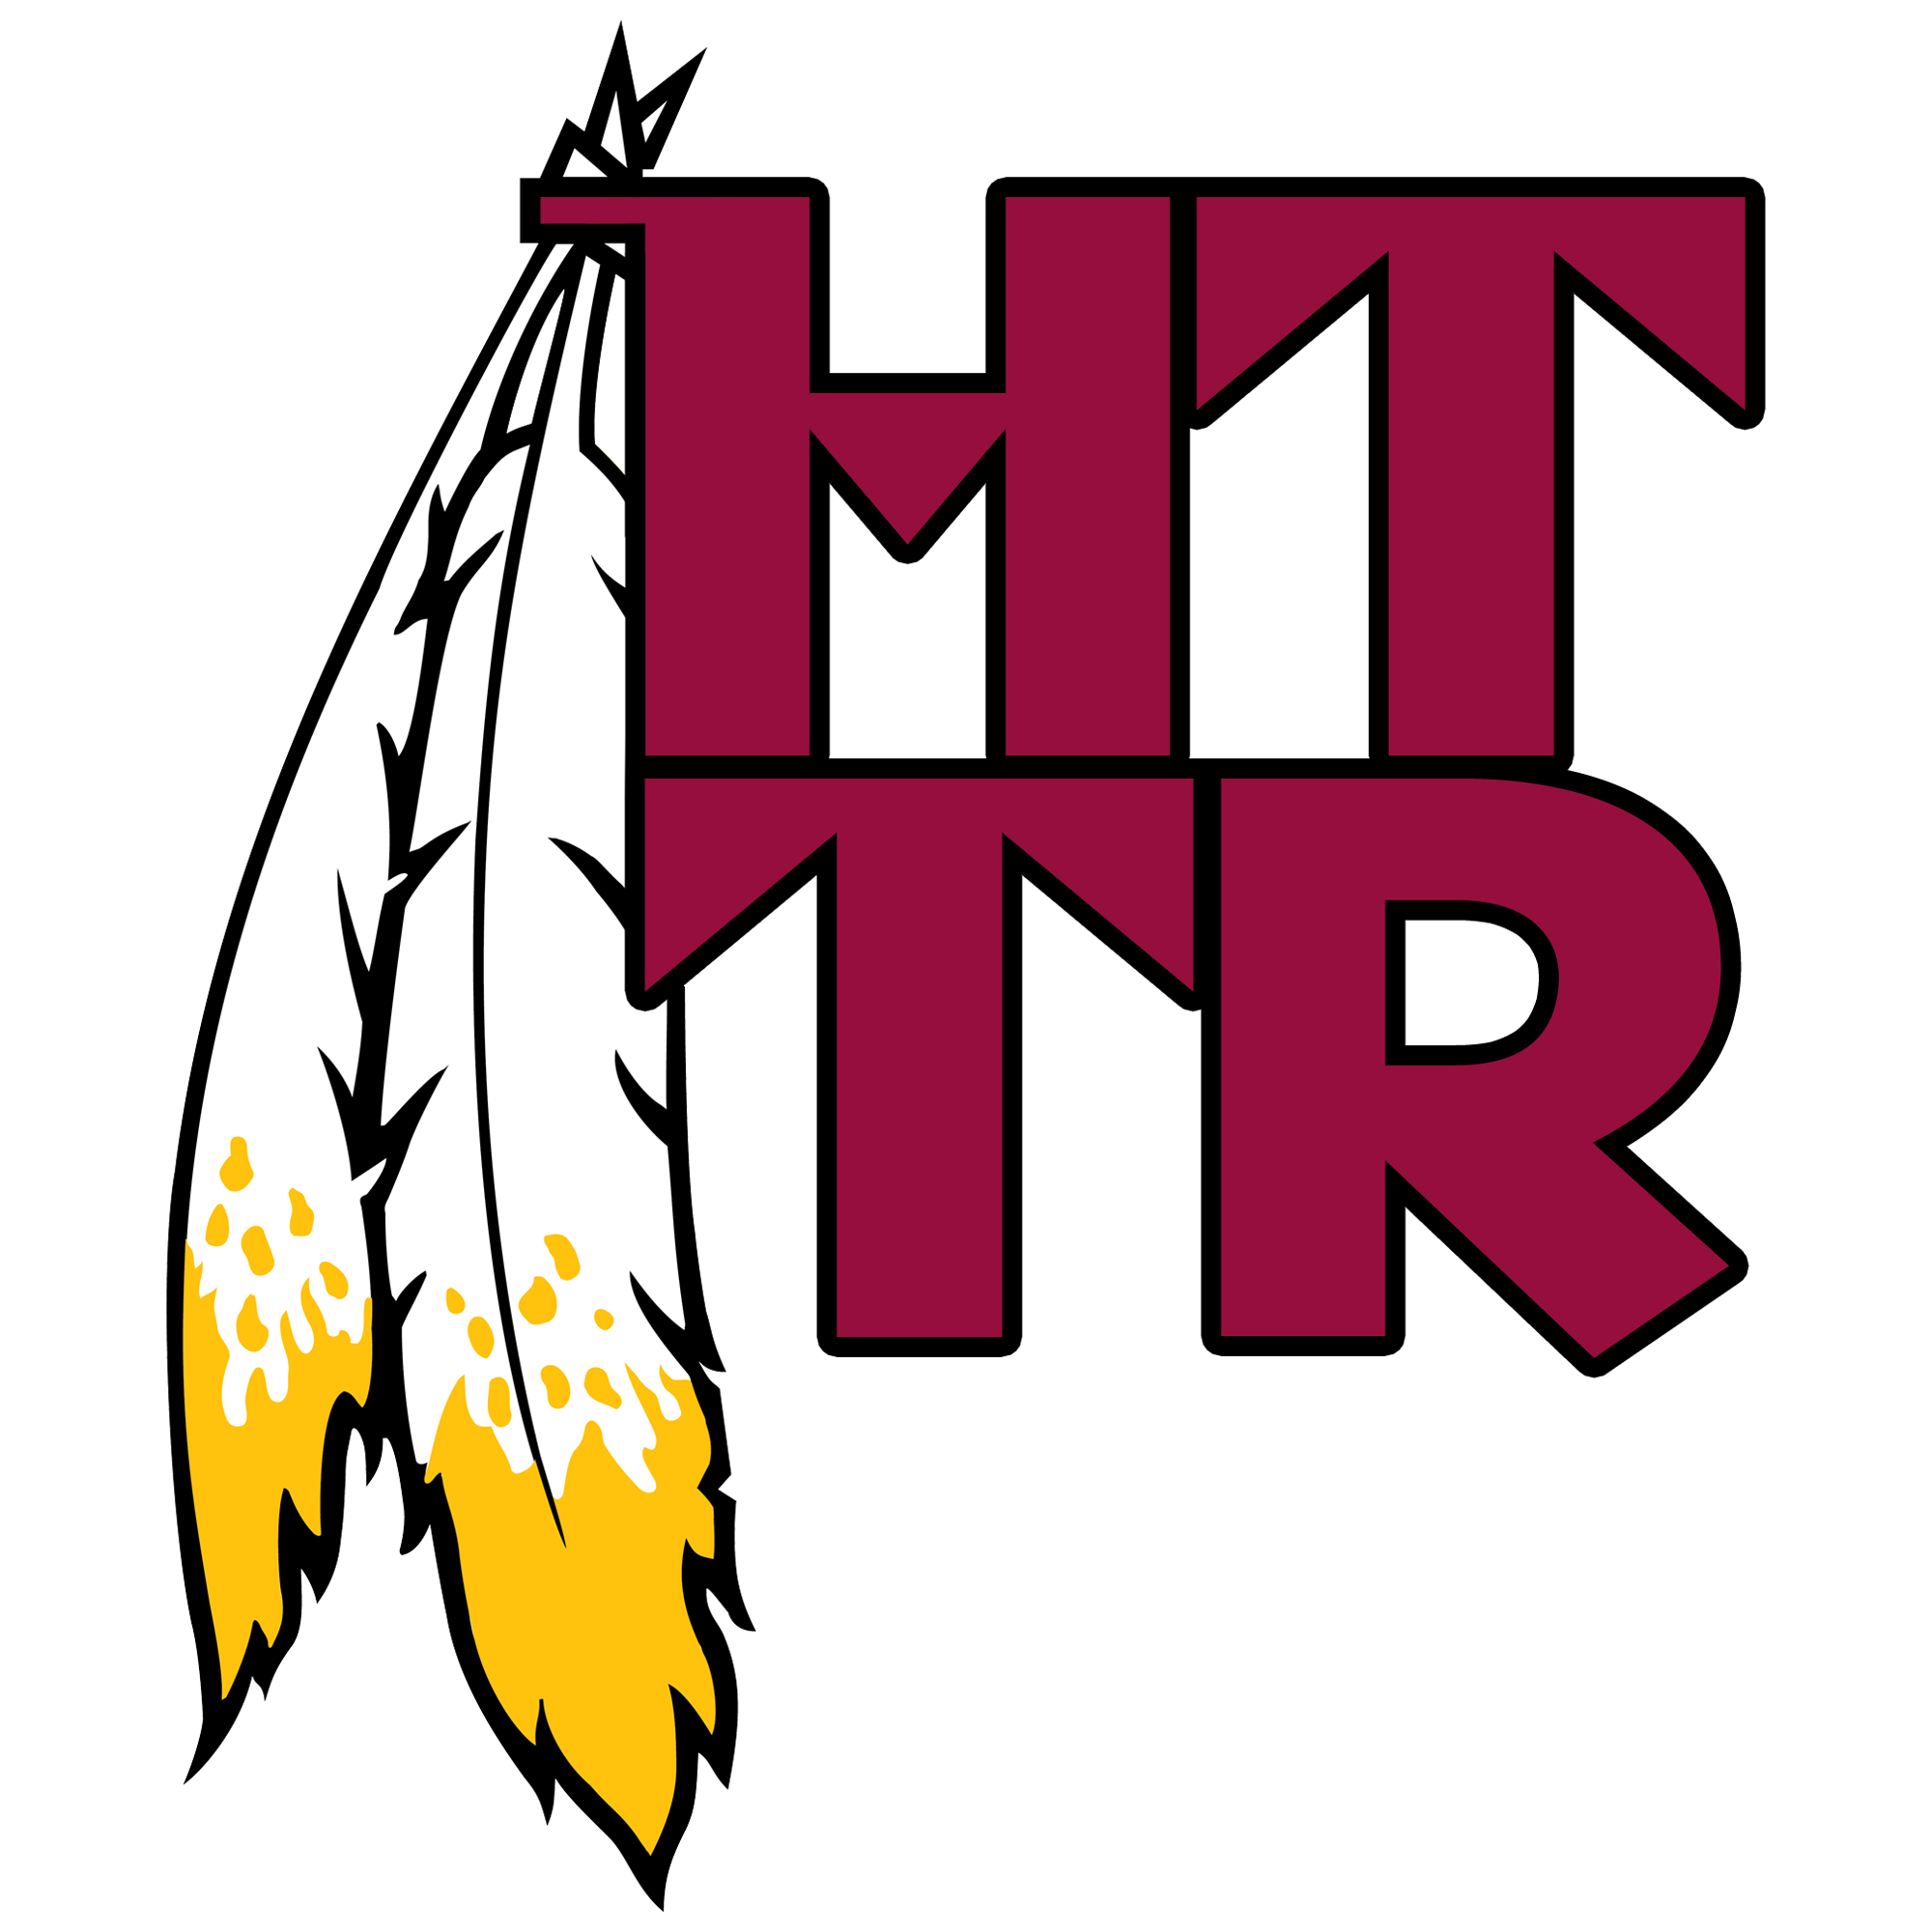 Httr hail to the. Redskins svg silhouette png free download